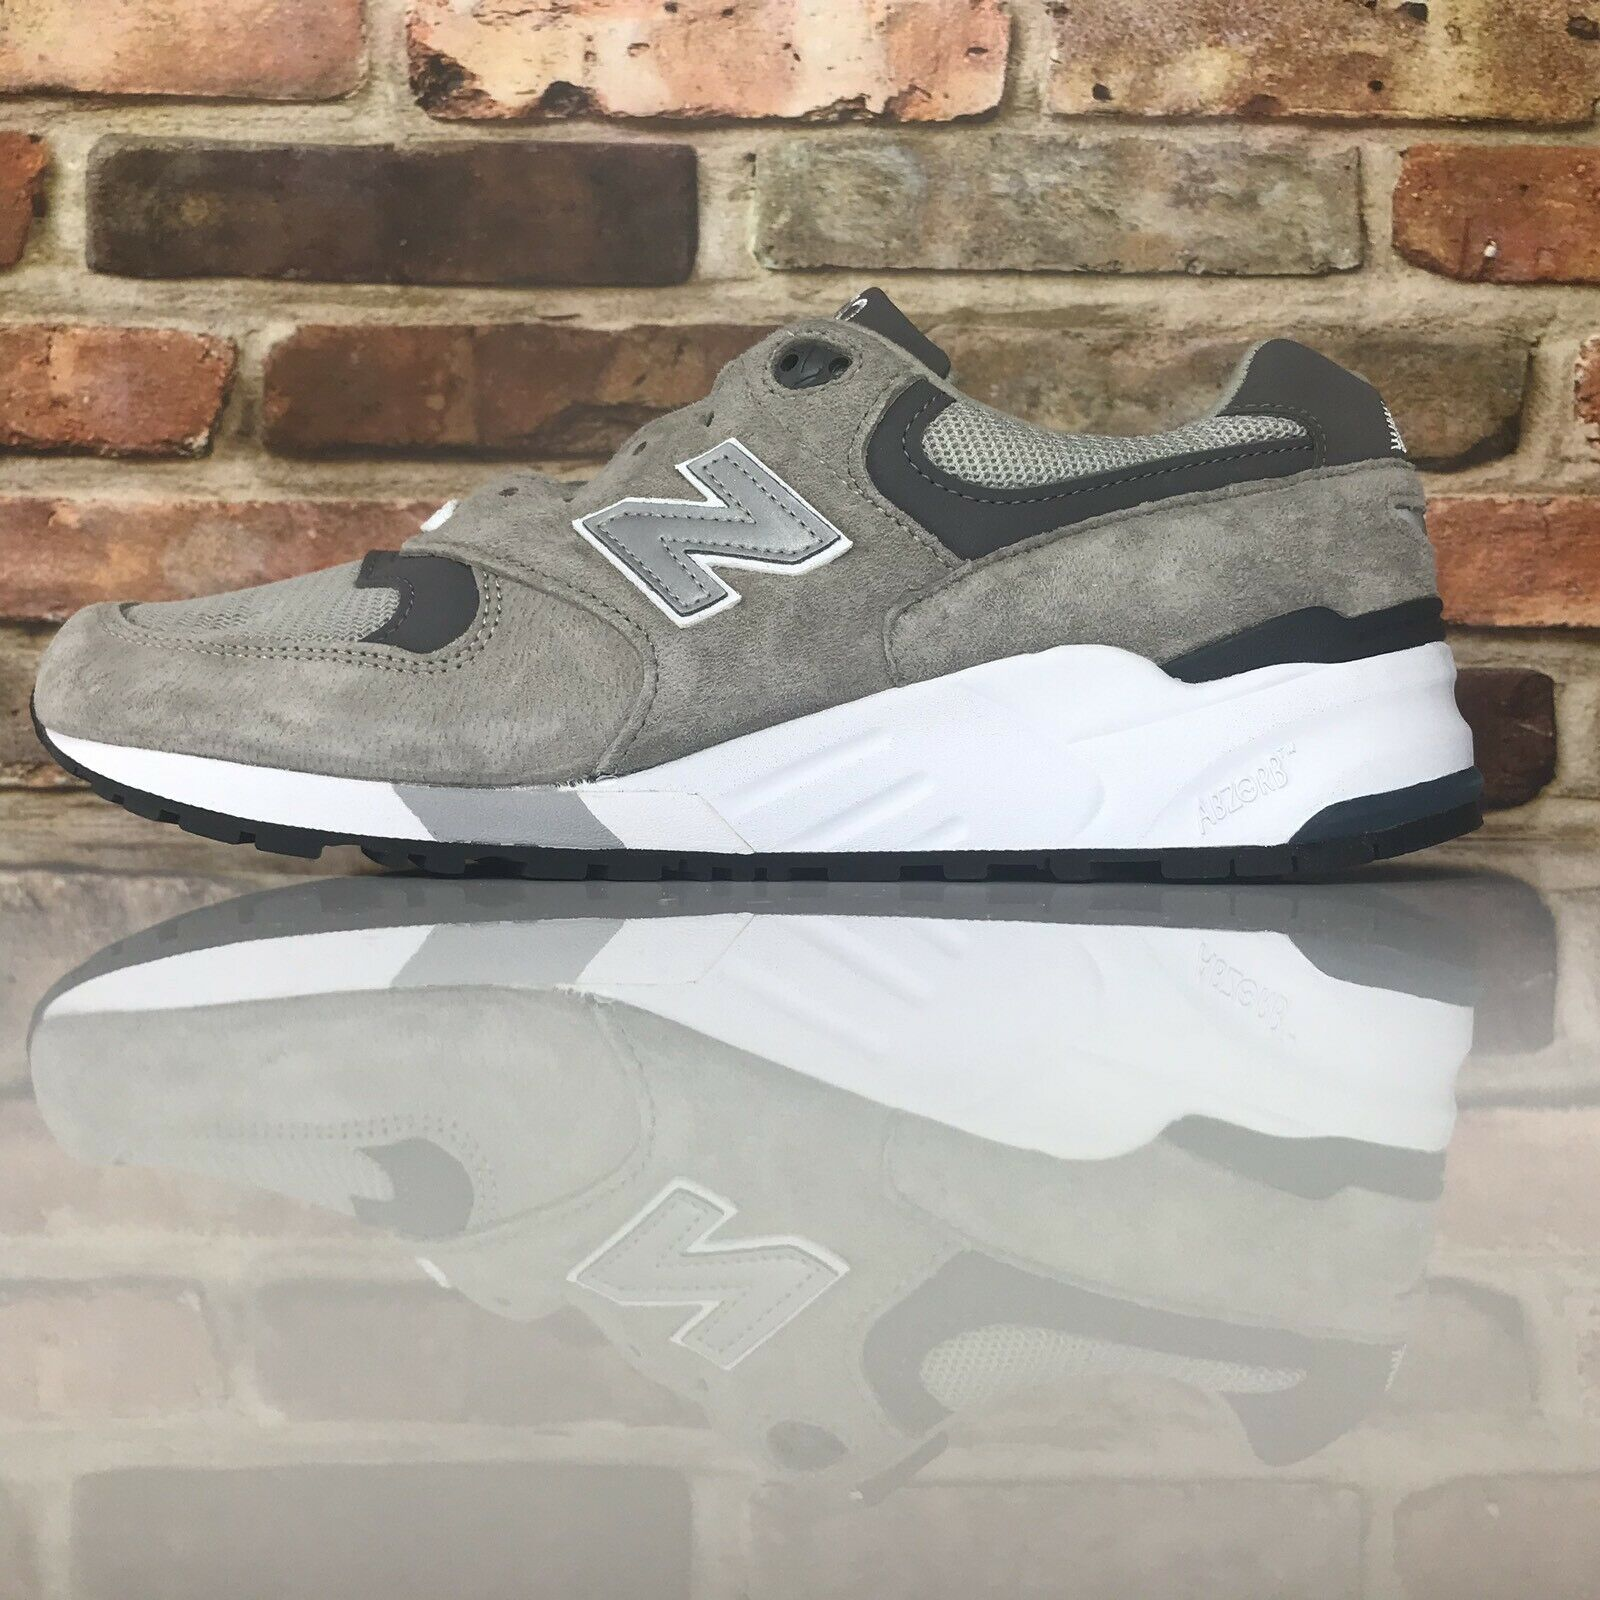 New Balance 999 M999CGL Grey Pewter Running shoes Made in USA Mens Size 12 D